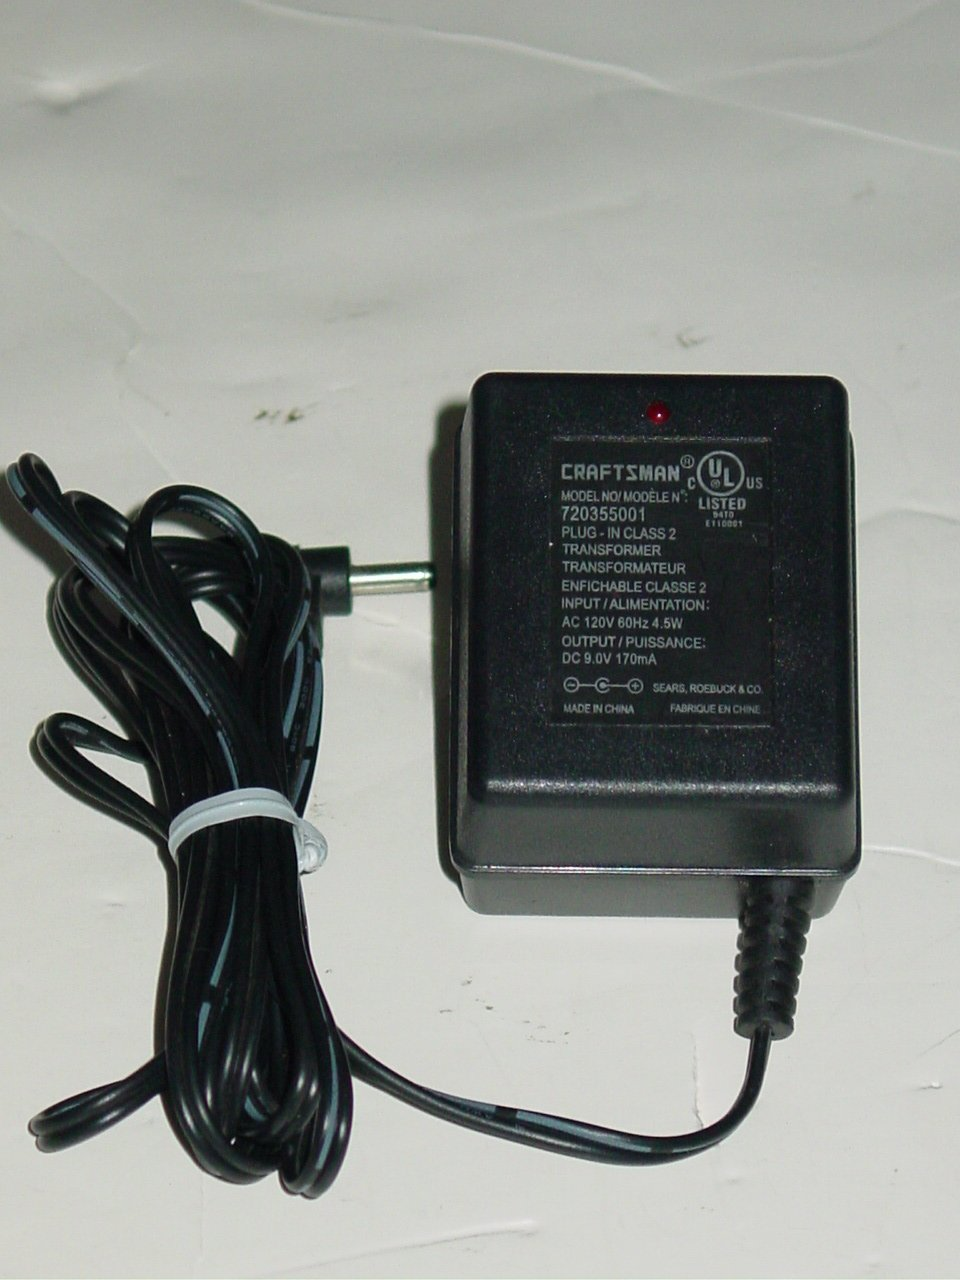 Craftsman 720355001 Charger AC Adapter 9V 170mA for 315.117790 Cordless Screwdriver